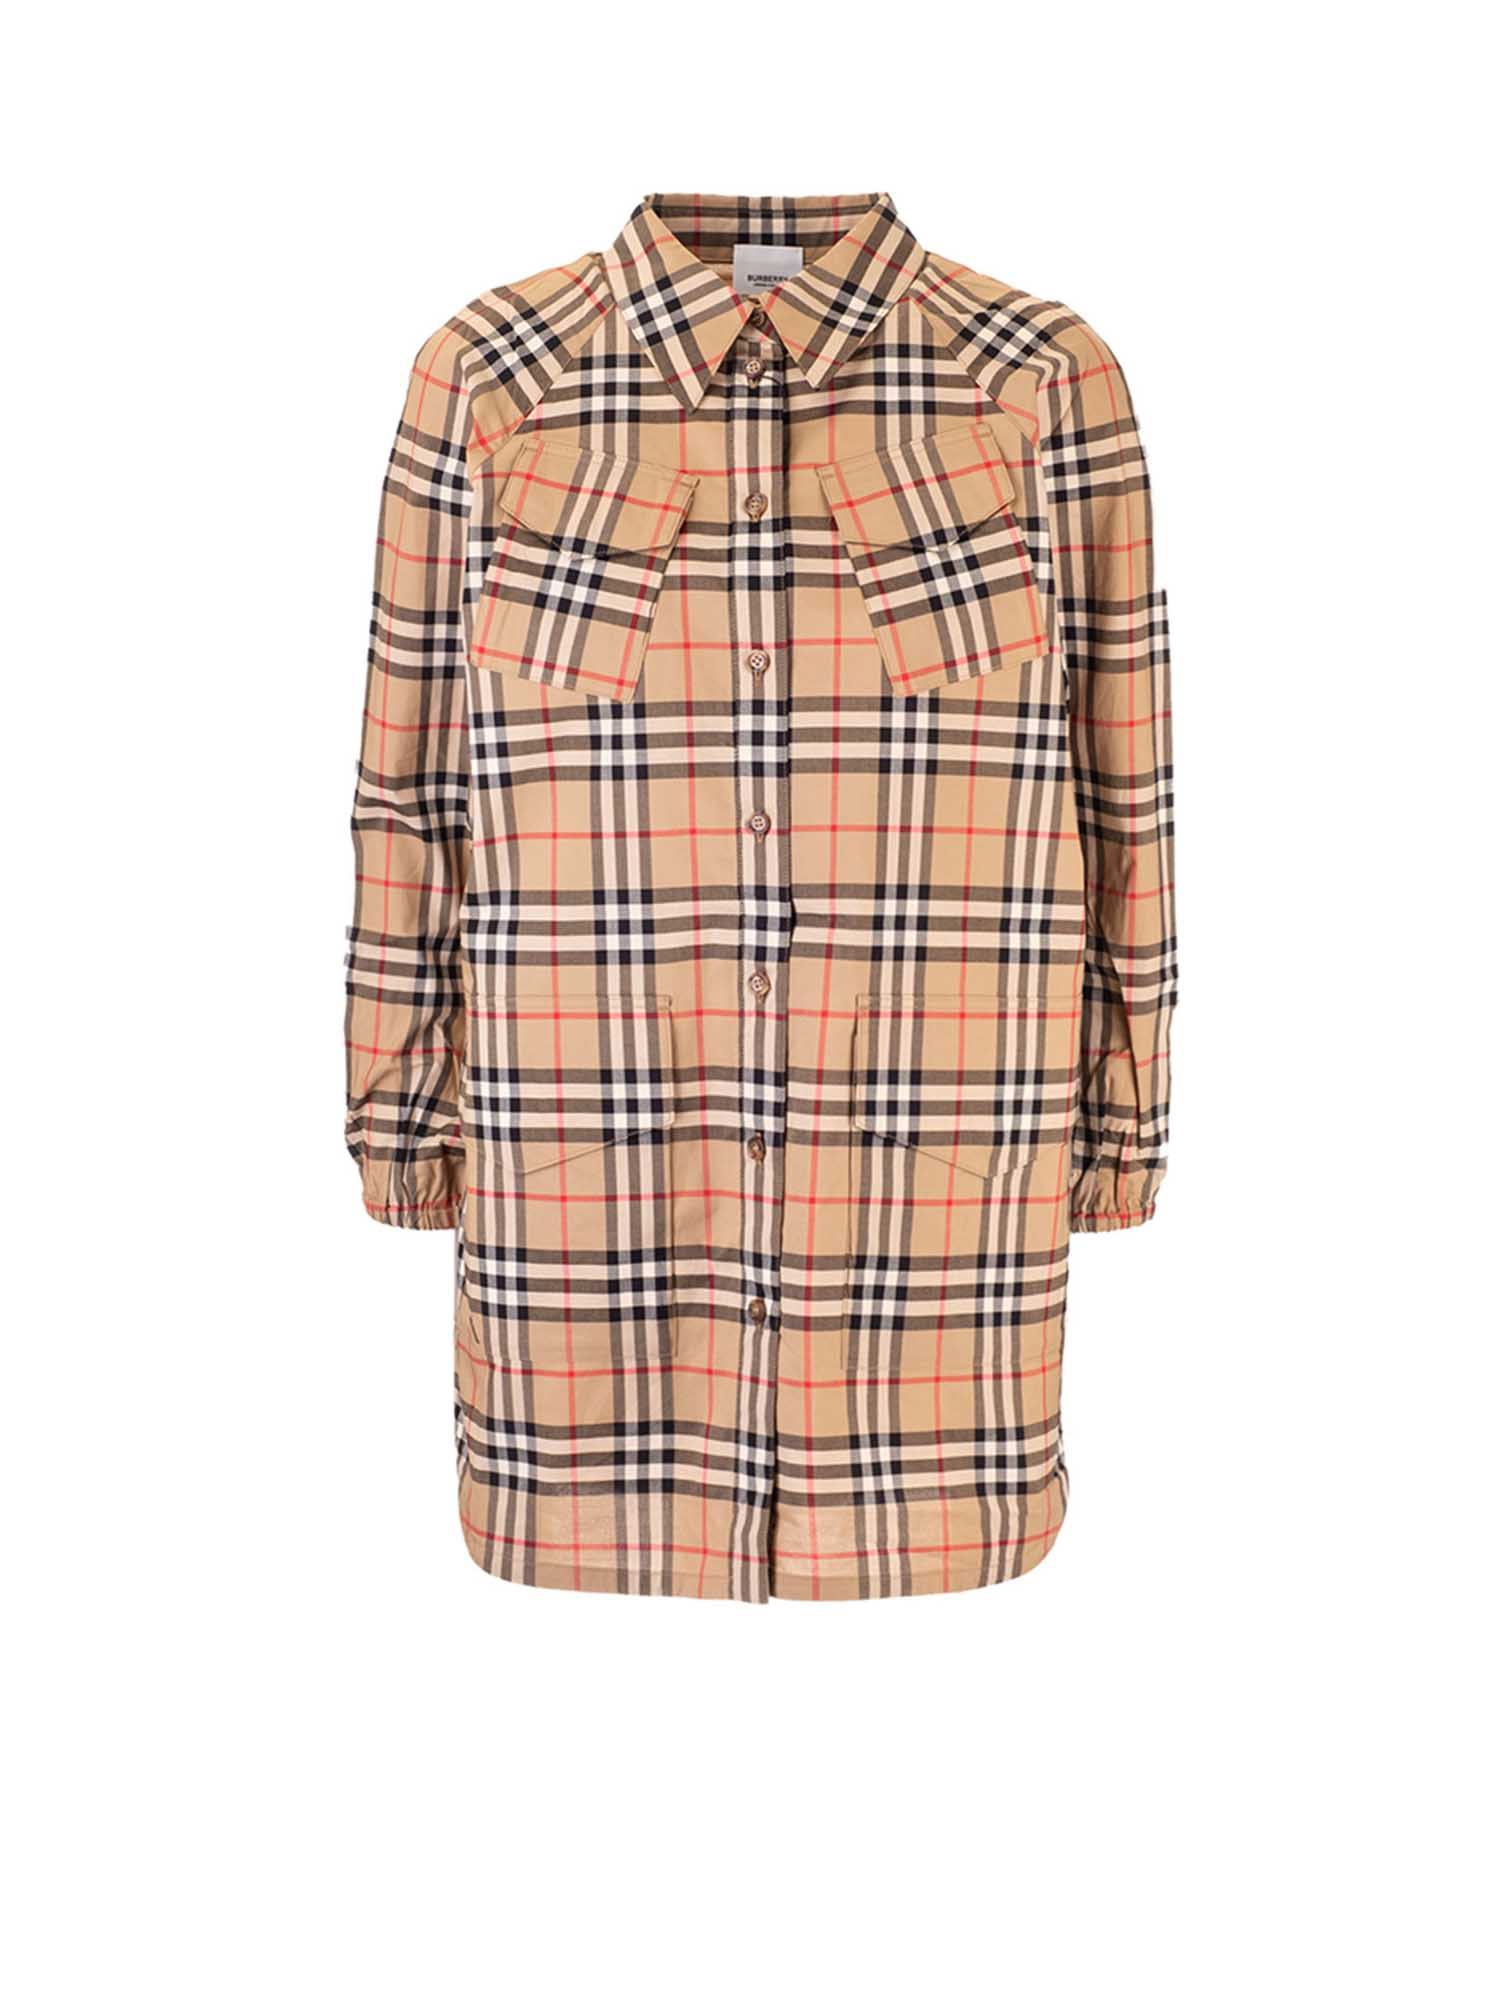 Burberry VINTAGE CHECK SHIRT DRESS IN BEIGE